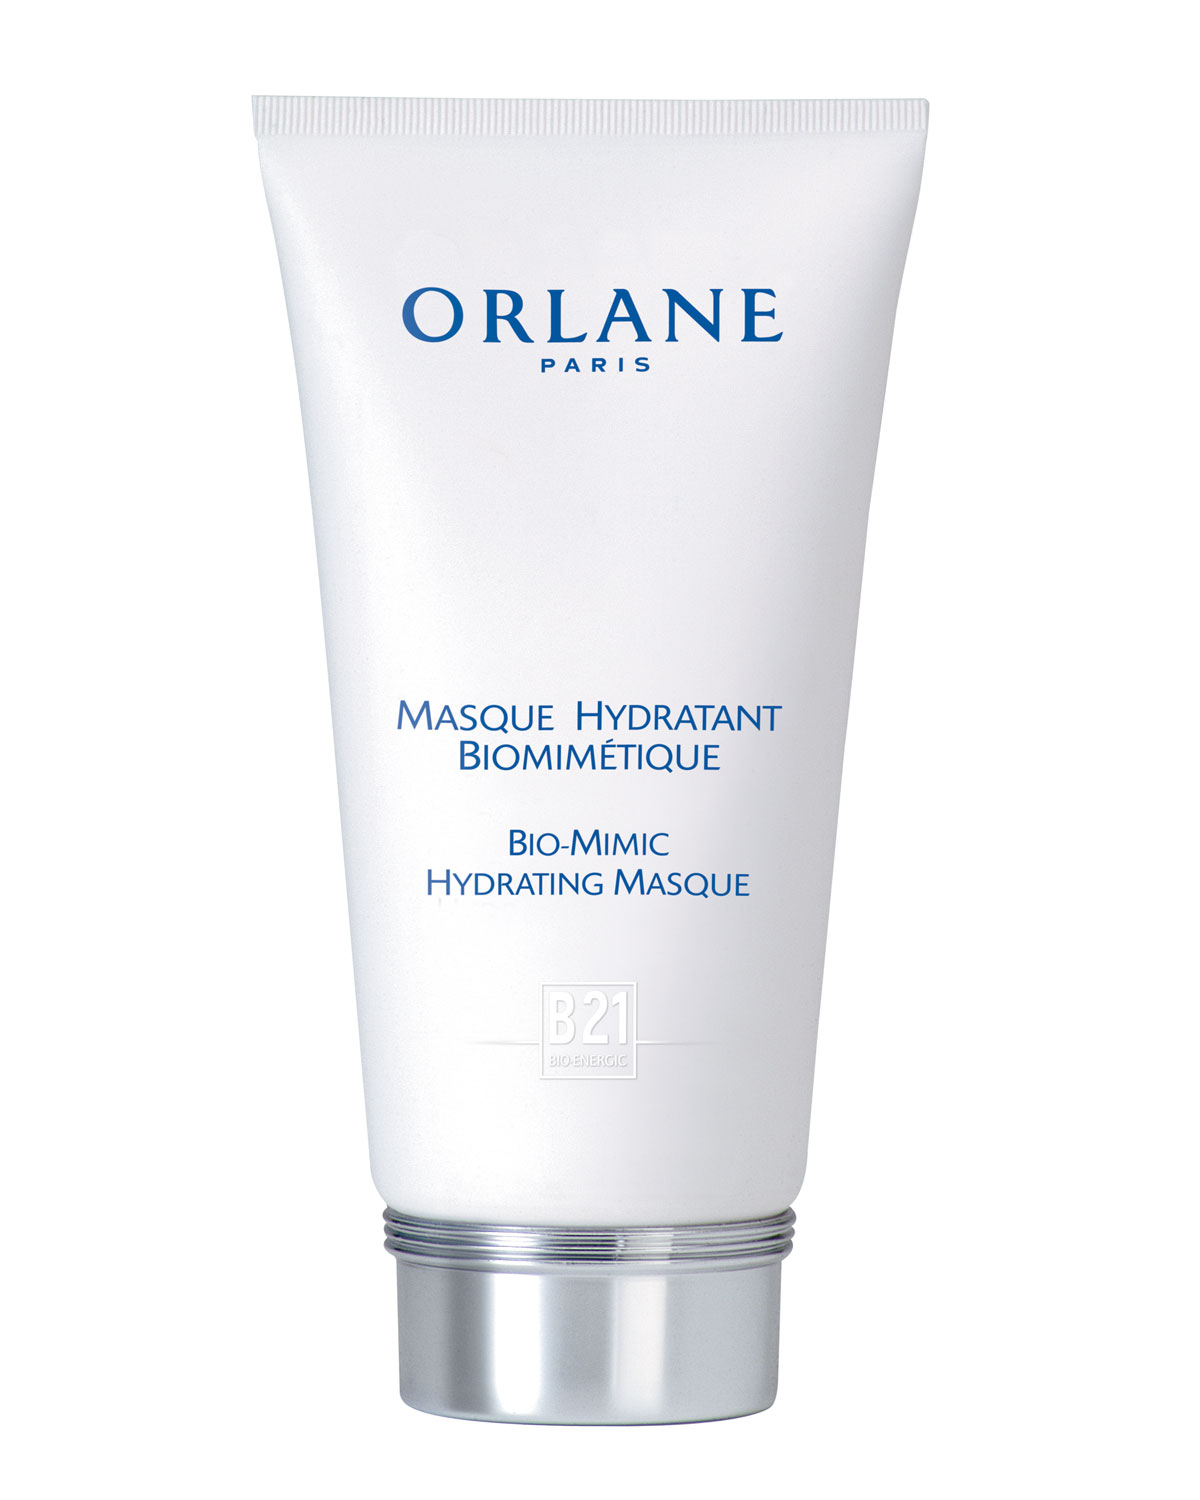 Orlane BIO MIMIC HYDRATING MASQUE, 2.5 OZ./ 75 ML